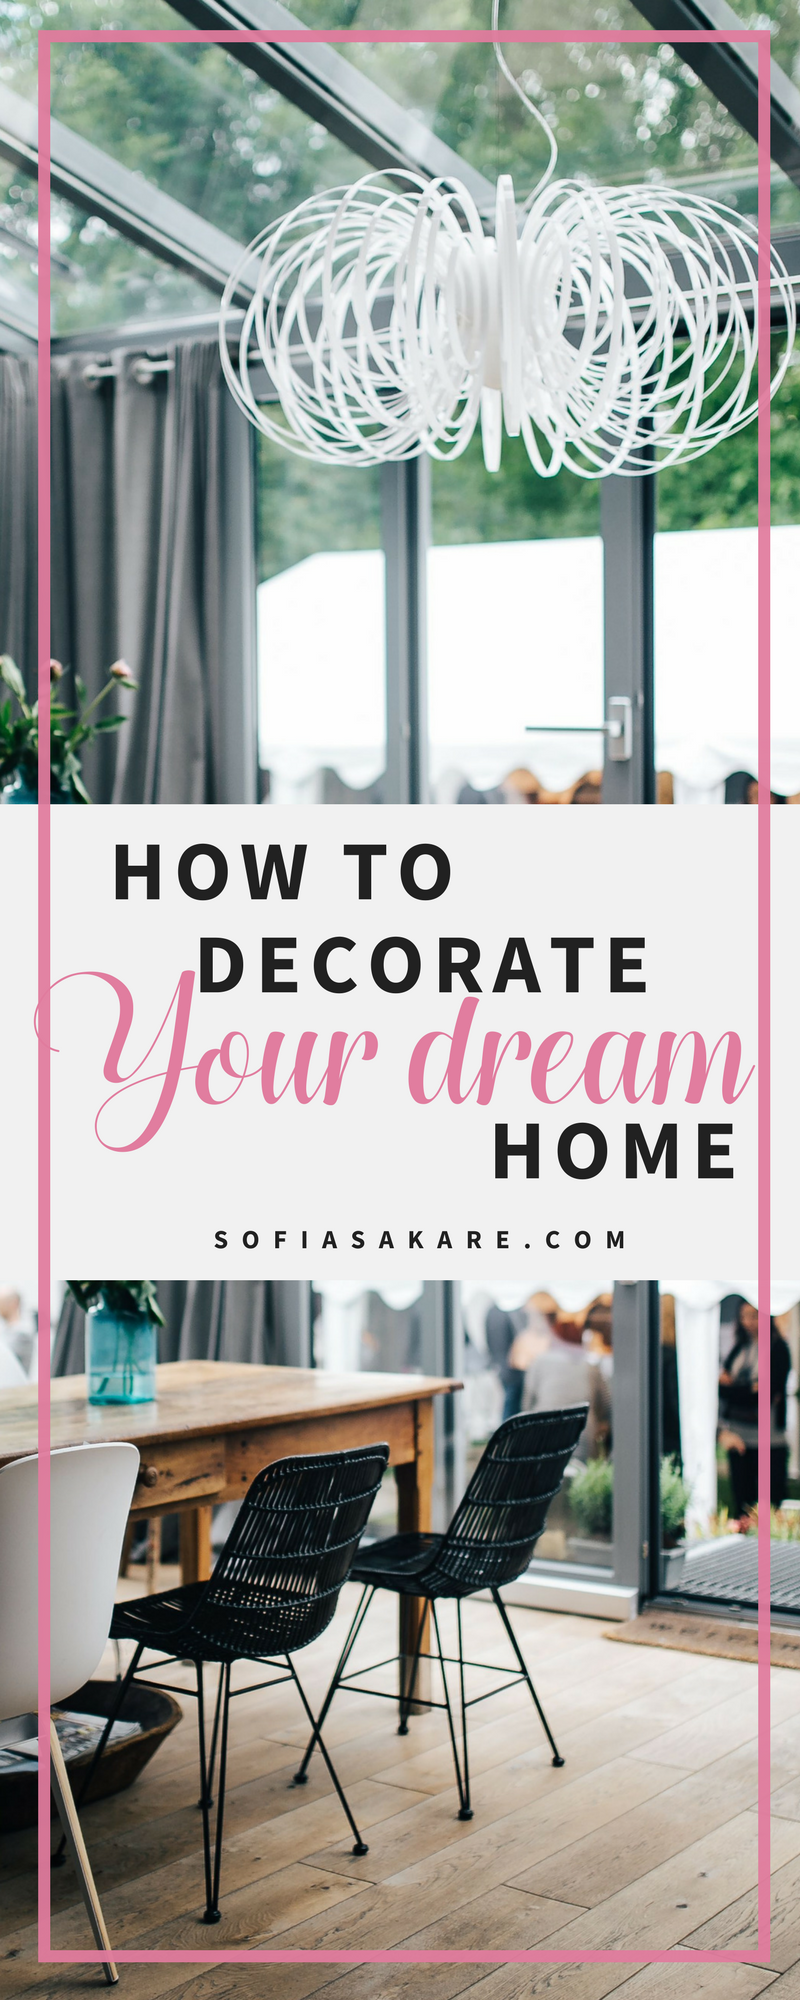 Step by step Guide How to Decorate Your